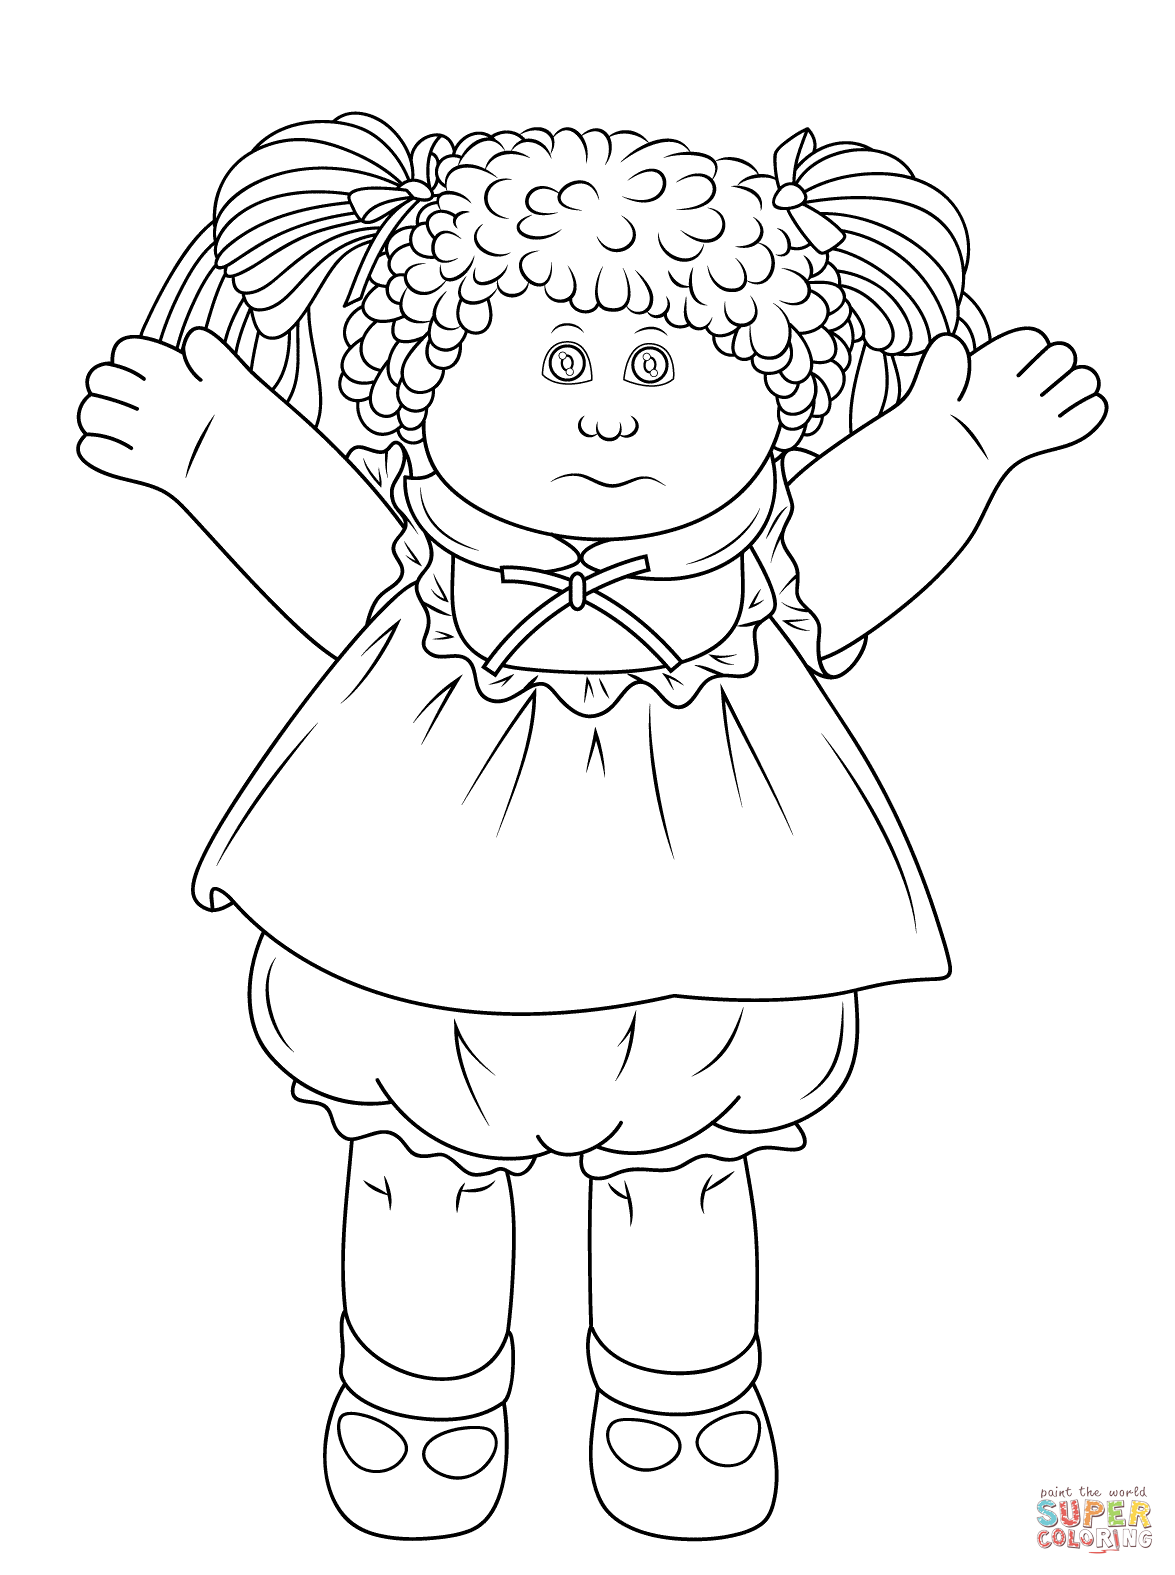 Cabbage Patch Doll coloring page | Free Printable Coloring Pages | Moon coloring  pages, Coloring pages for kids, Bird coloring pages